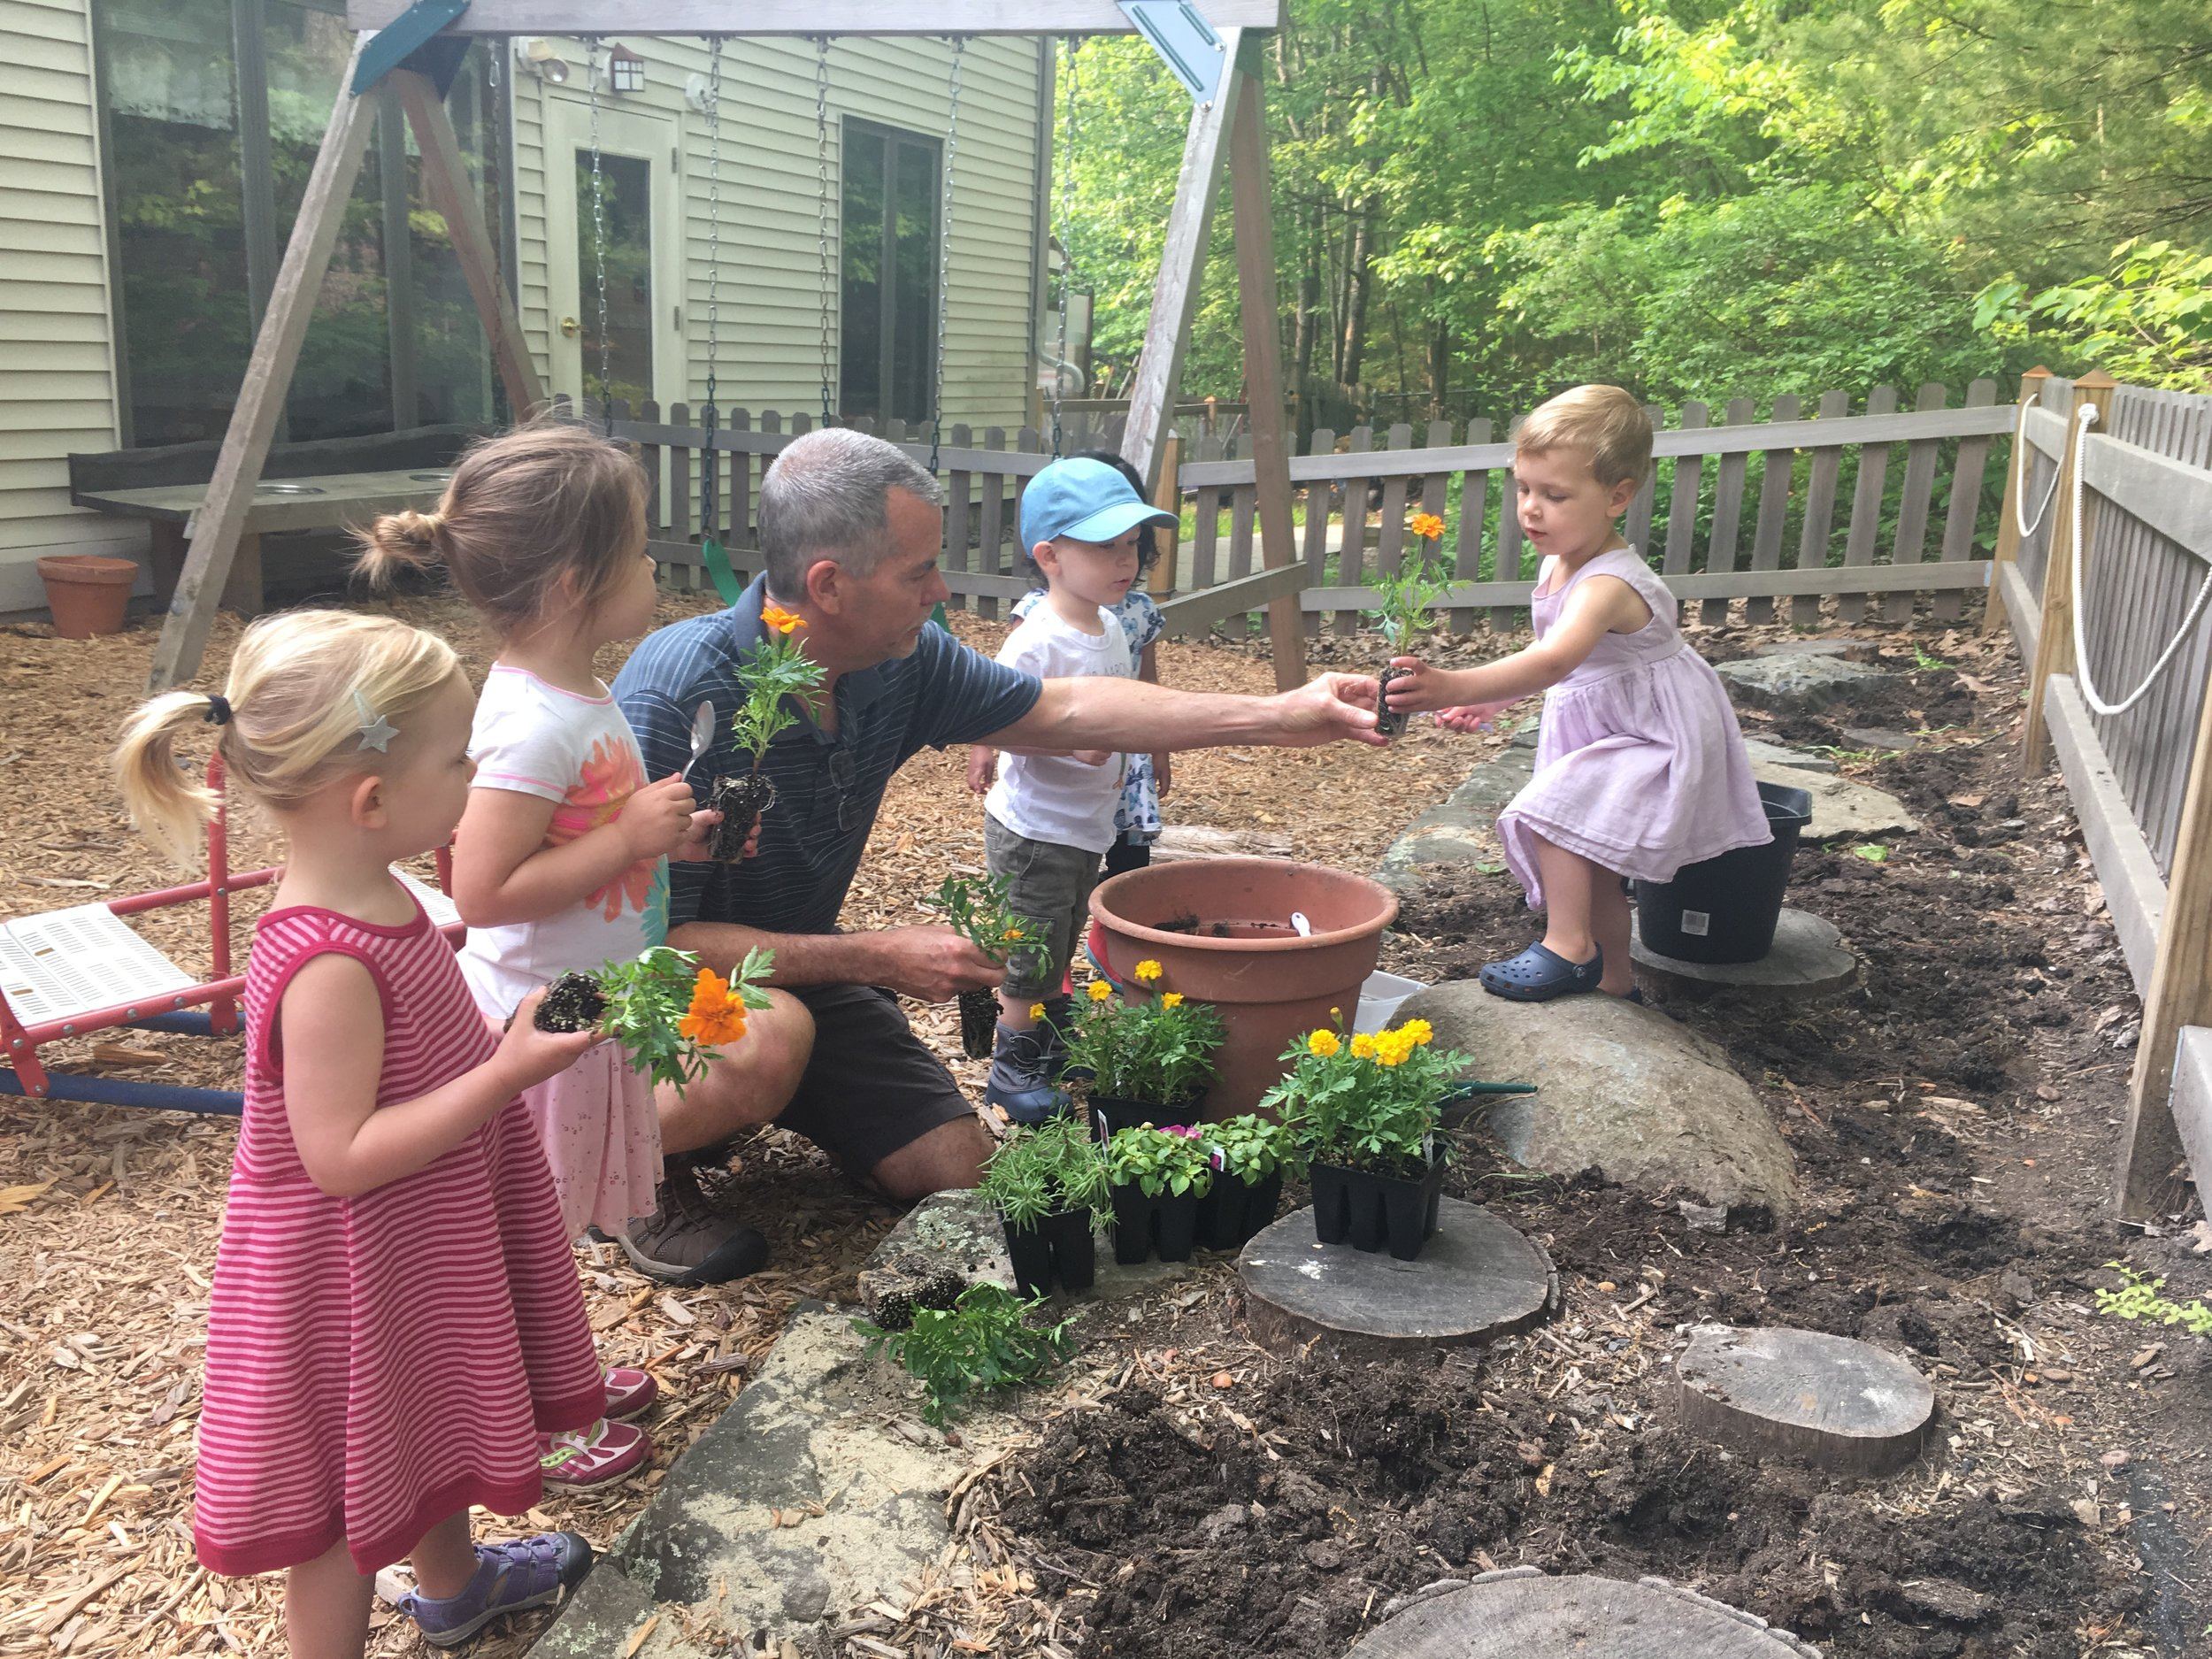 Planting flowers in the toddler playground garden with Michael.